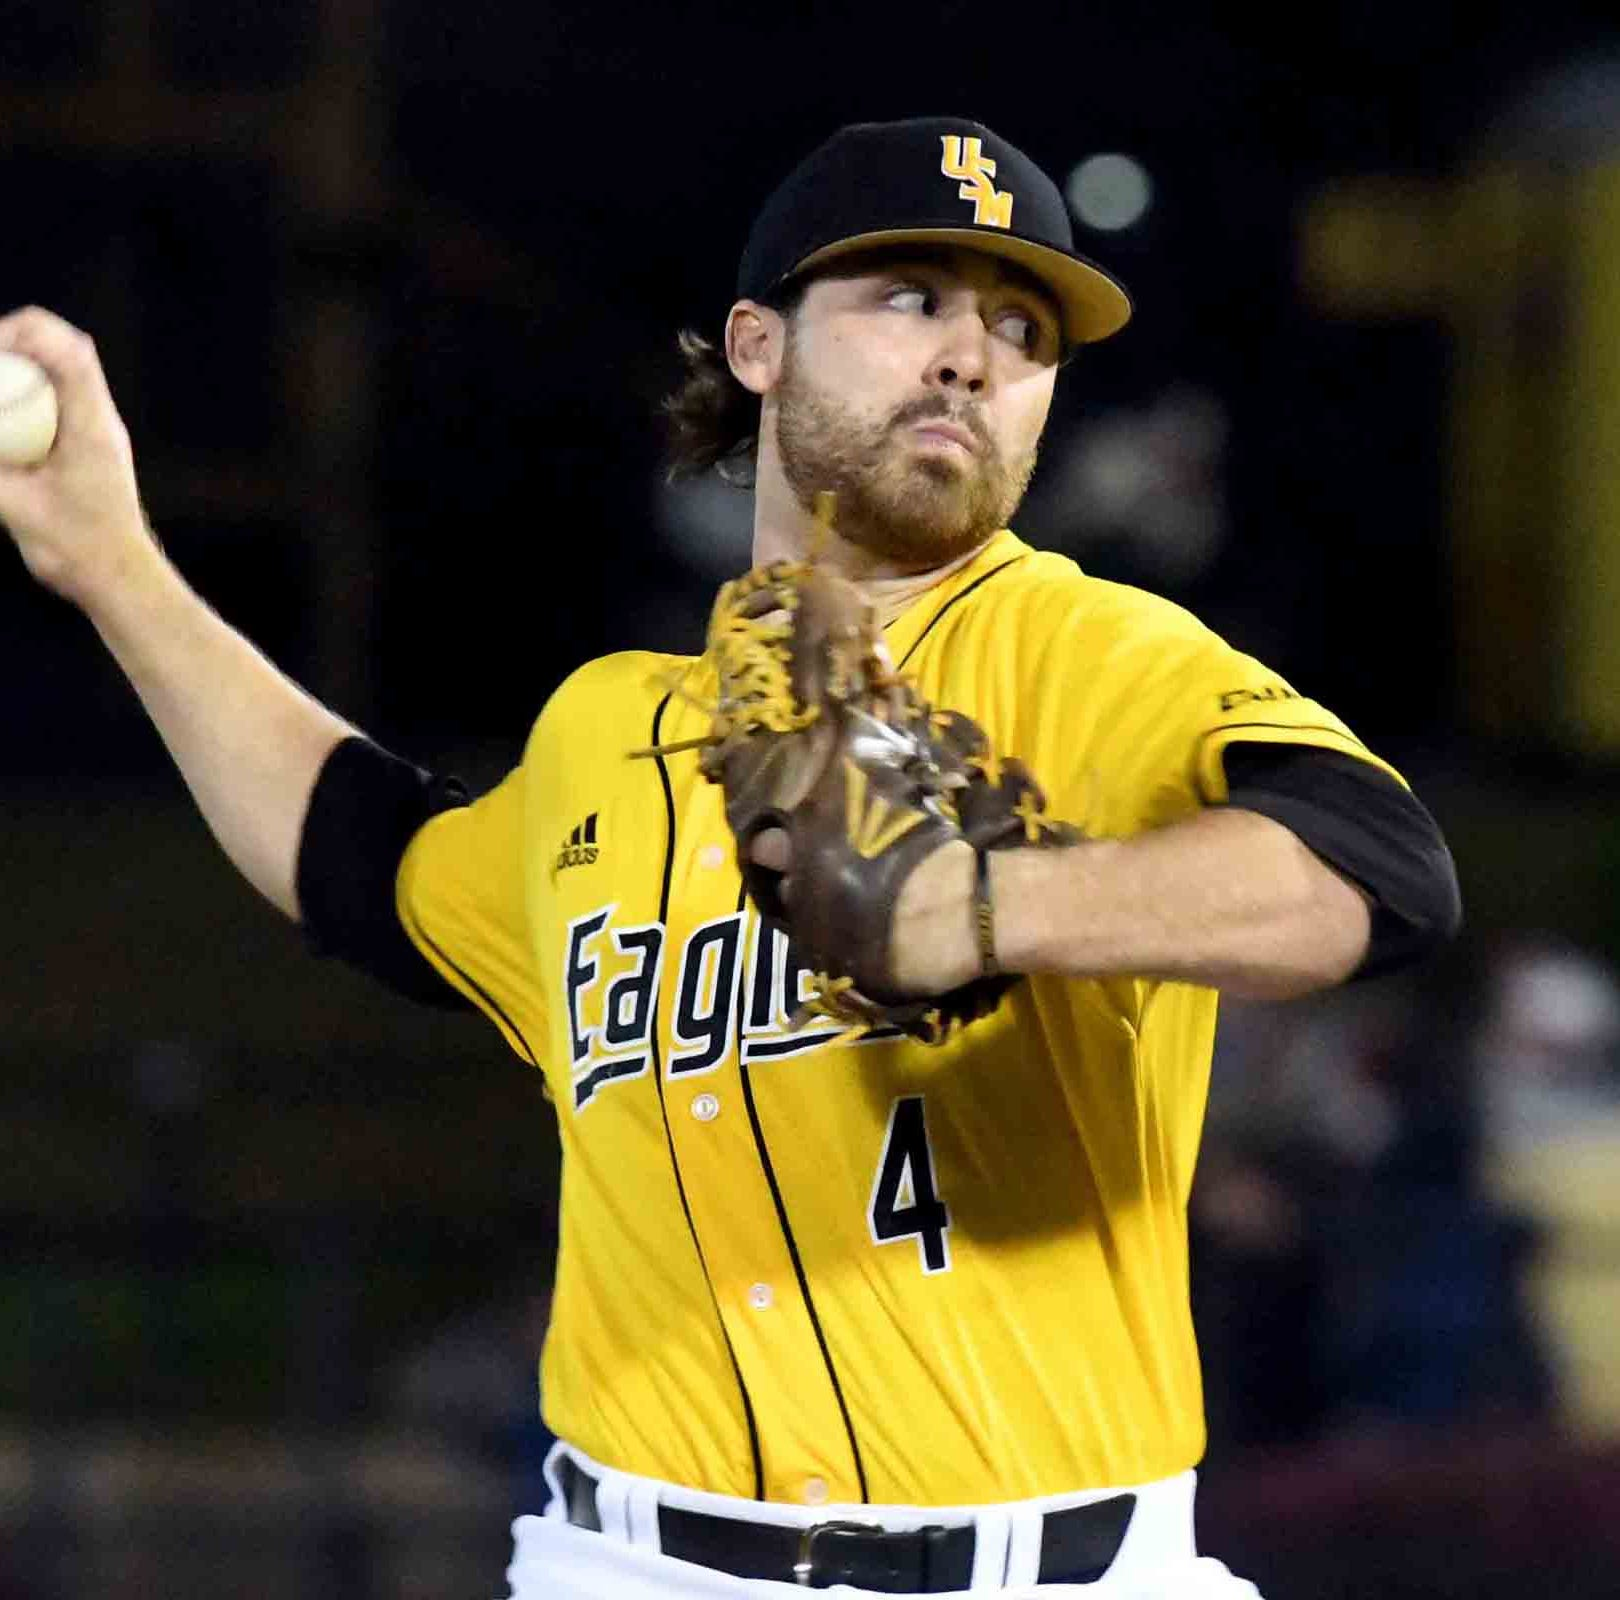 Southern Miss baseball continues homestand Wednesday against Southern